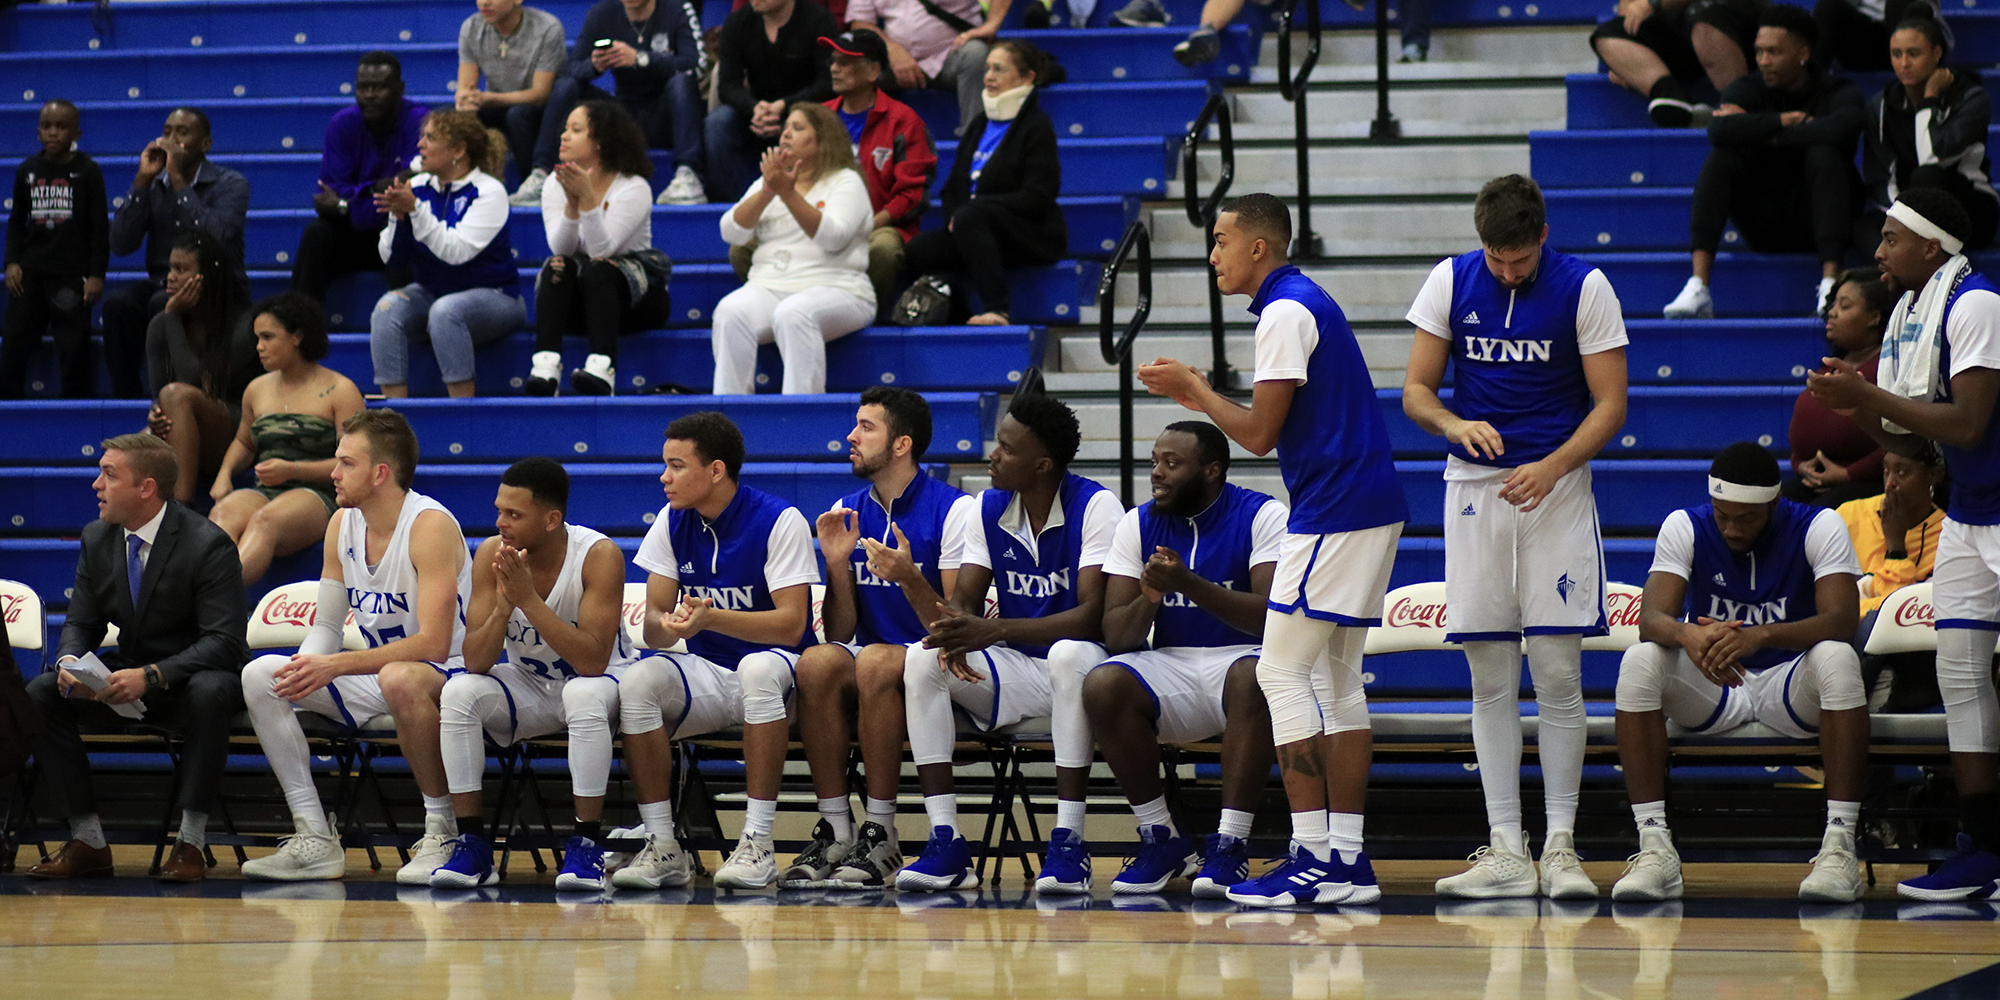 Men's Basketball Enters NABC National Rankings, Drops from D2SIDA Poll